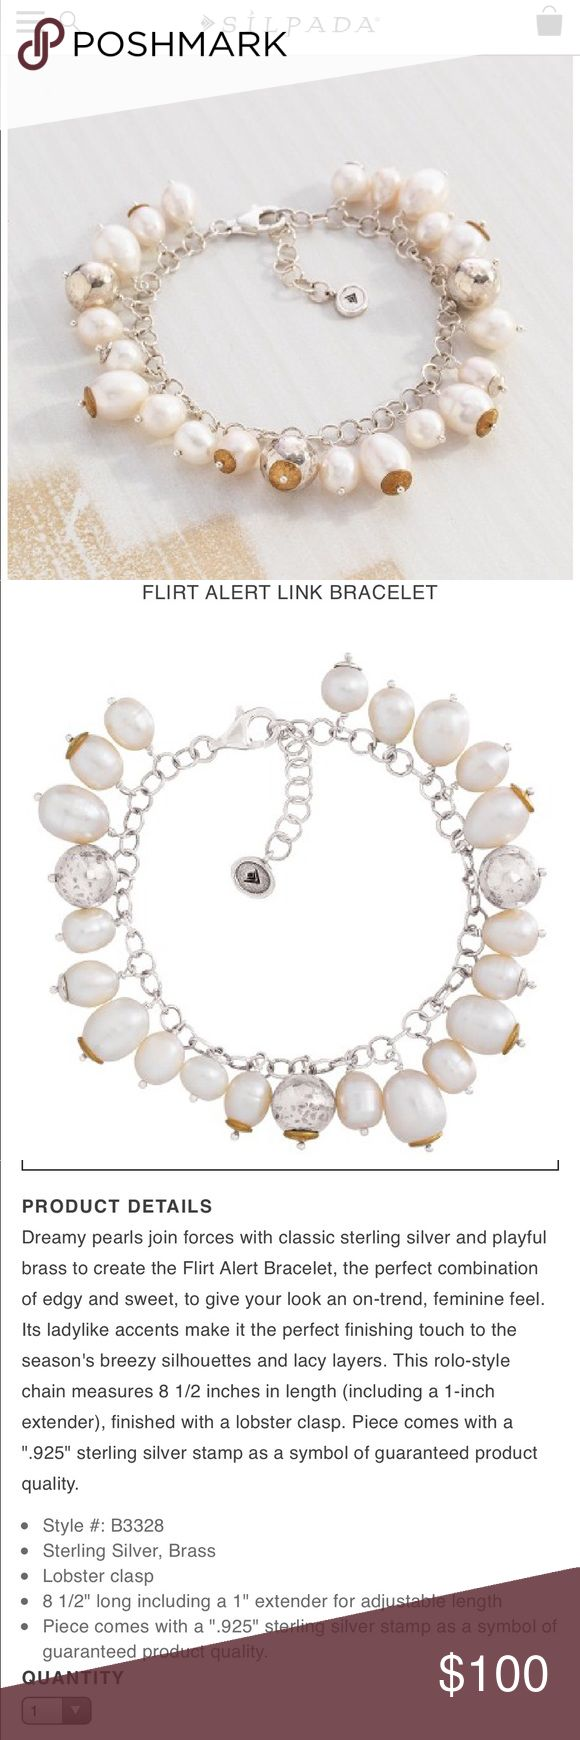 NEW (three available) B3328 FLIRT ALERT Bracelet NEW Price that will be posted is for each. There are three currently available. Sale begins in 72 hours. Quantity updated on Sunday. Preview and prepare now, quantities limited. Silpada Jewelry Bracelets